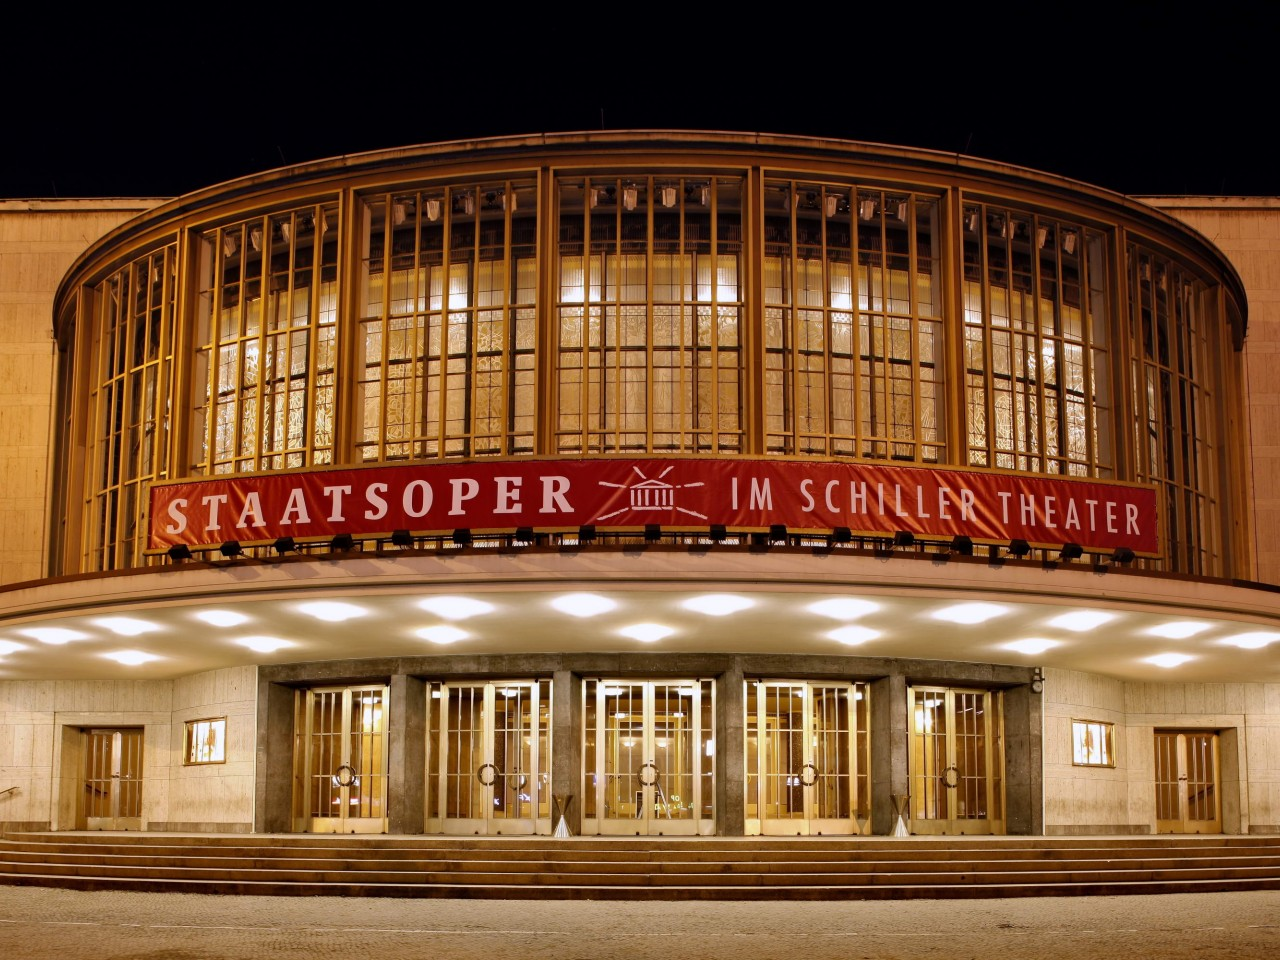 The Berlin Staatsoper